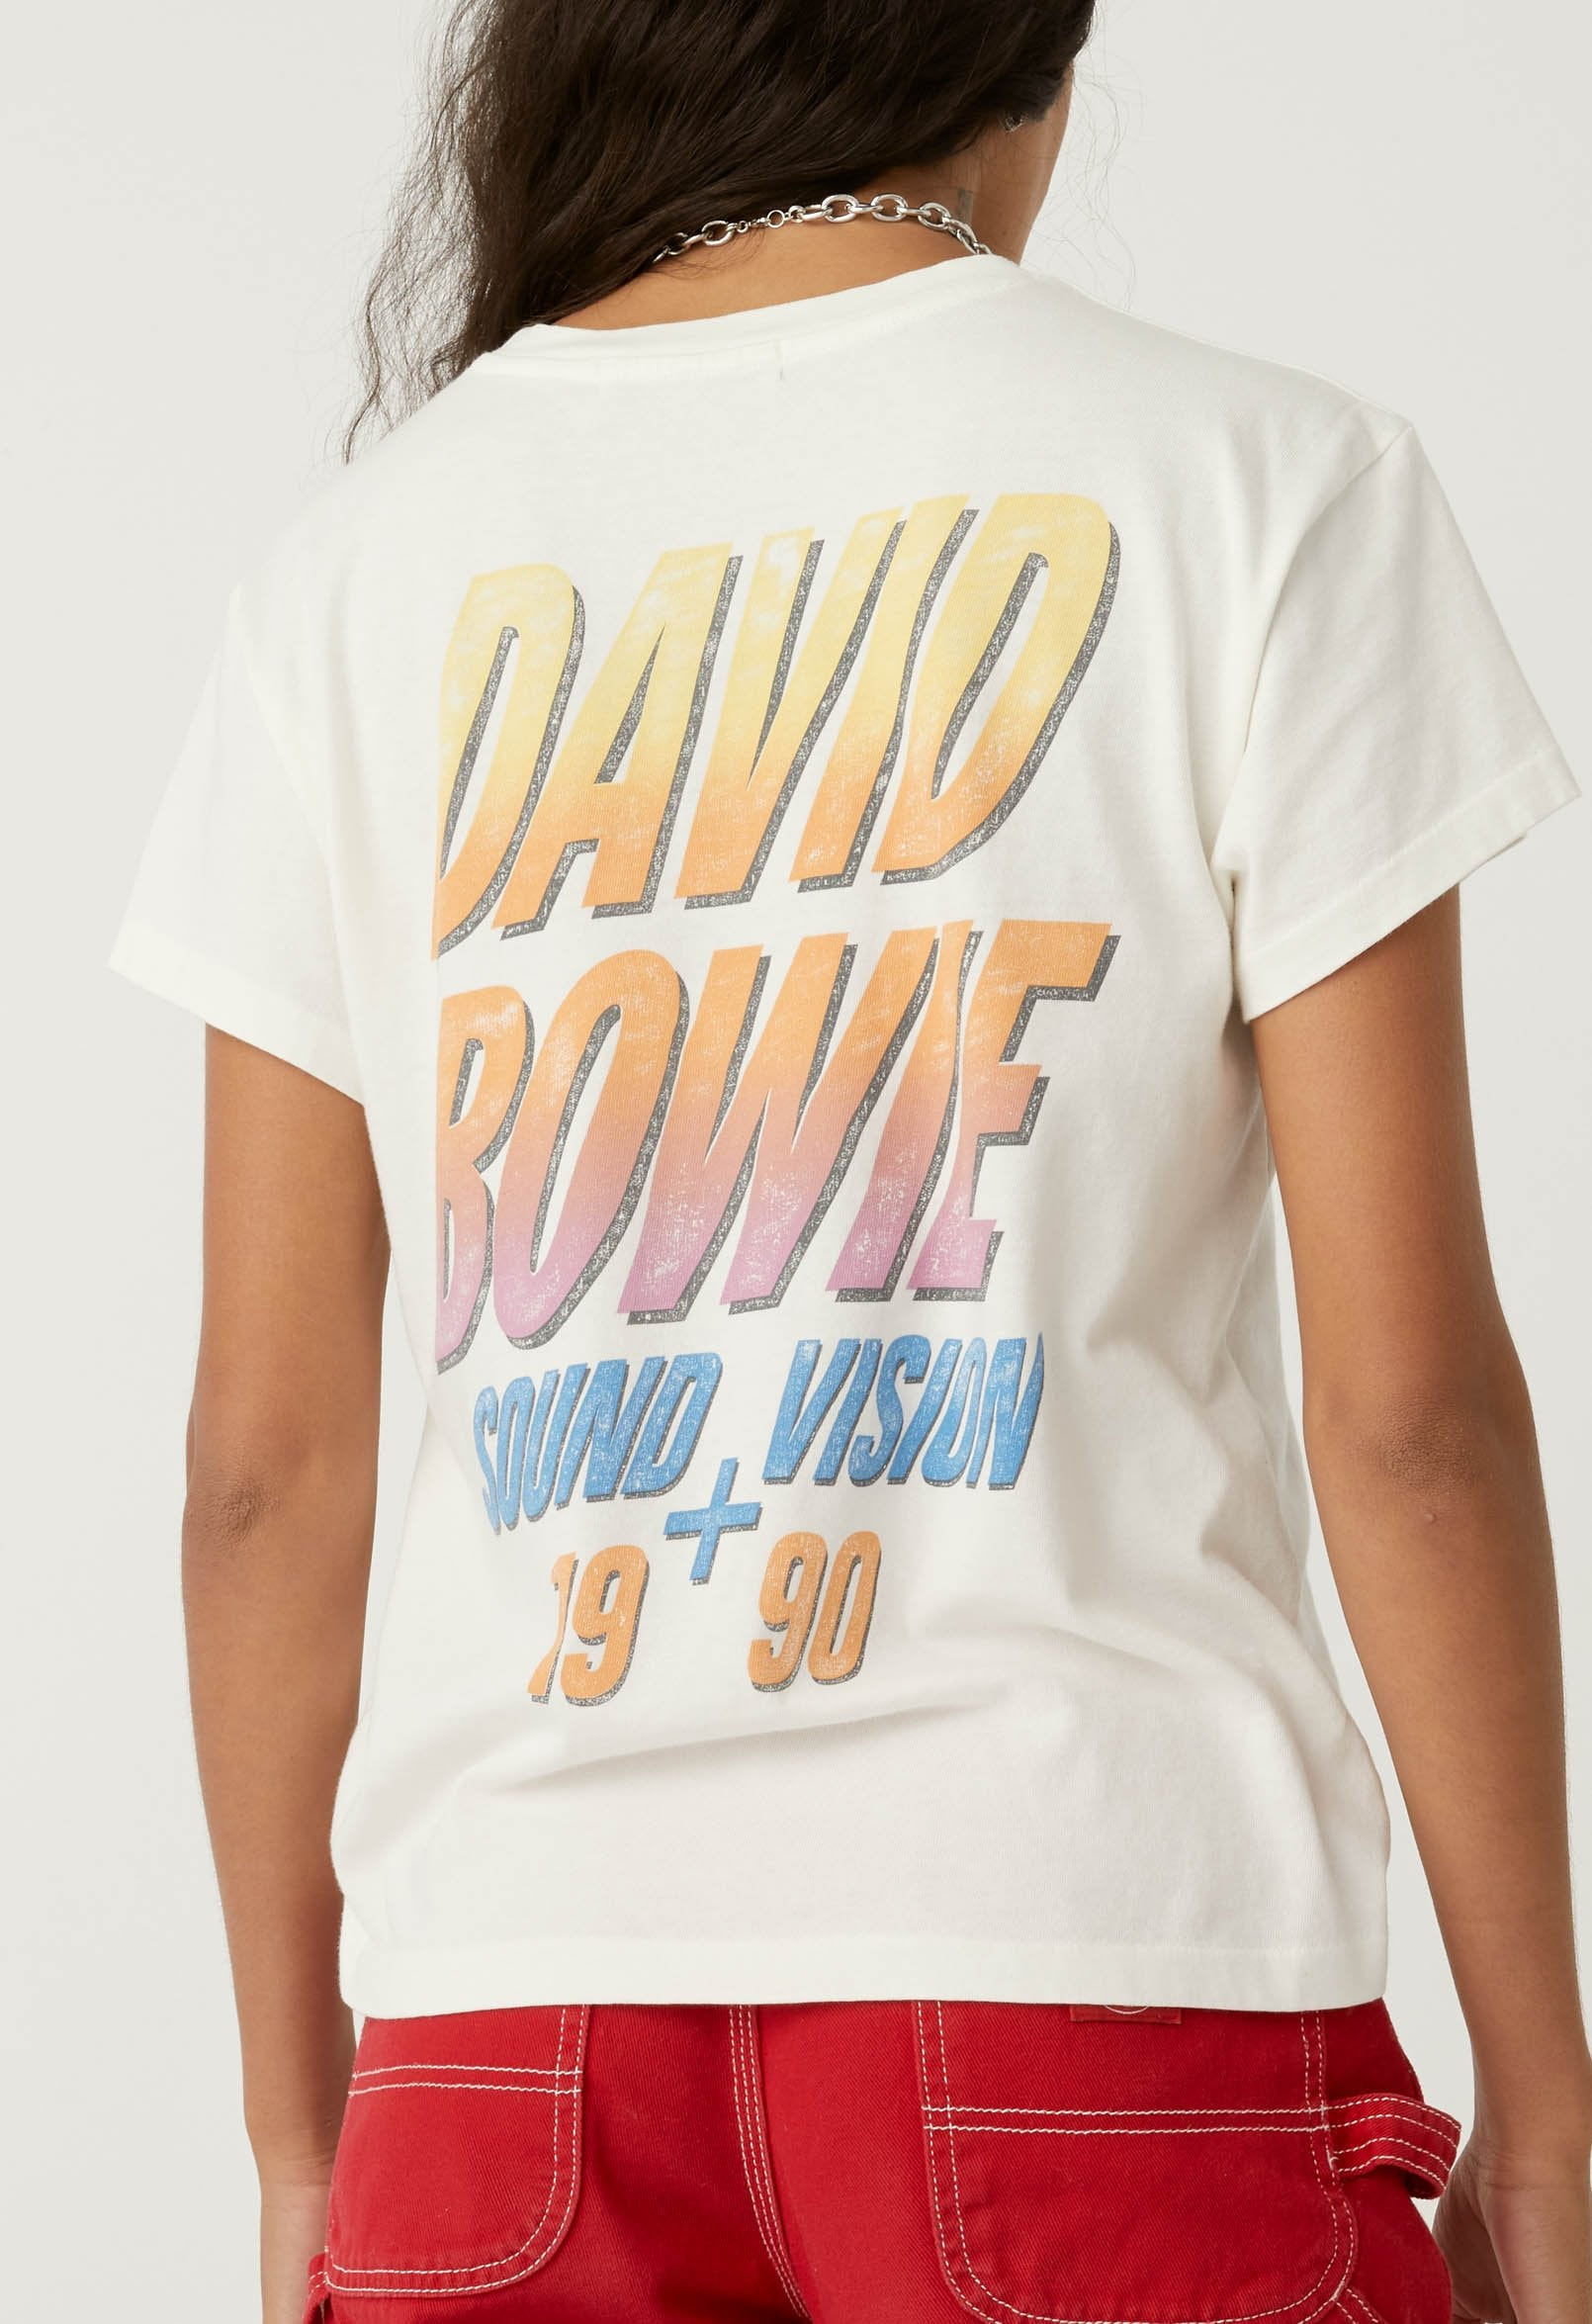 David Bowie Sound and Vision tour tee - vintage white